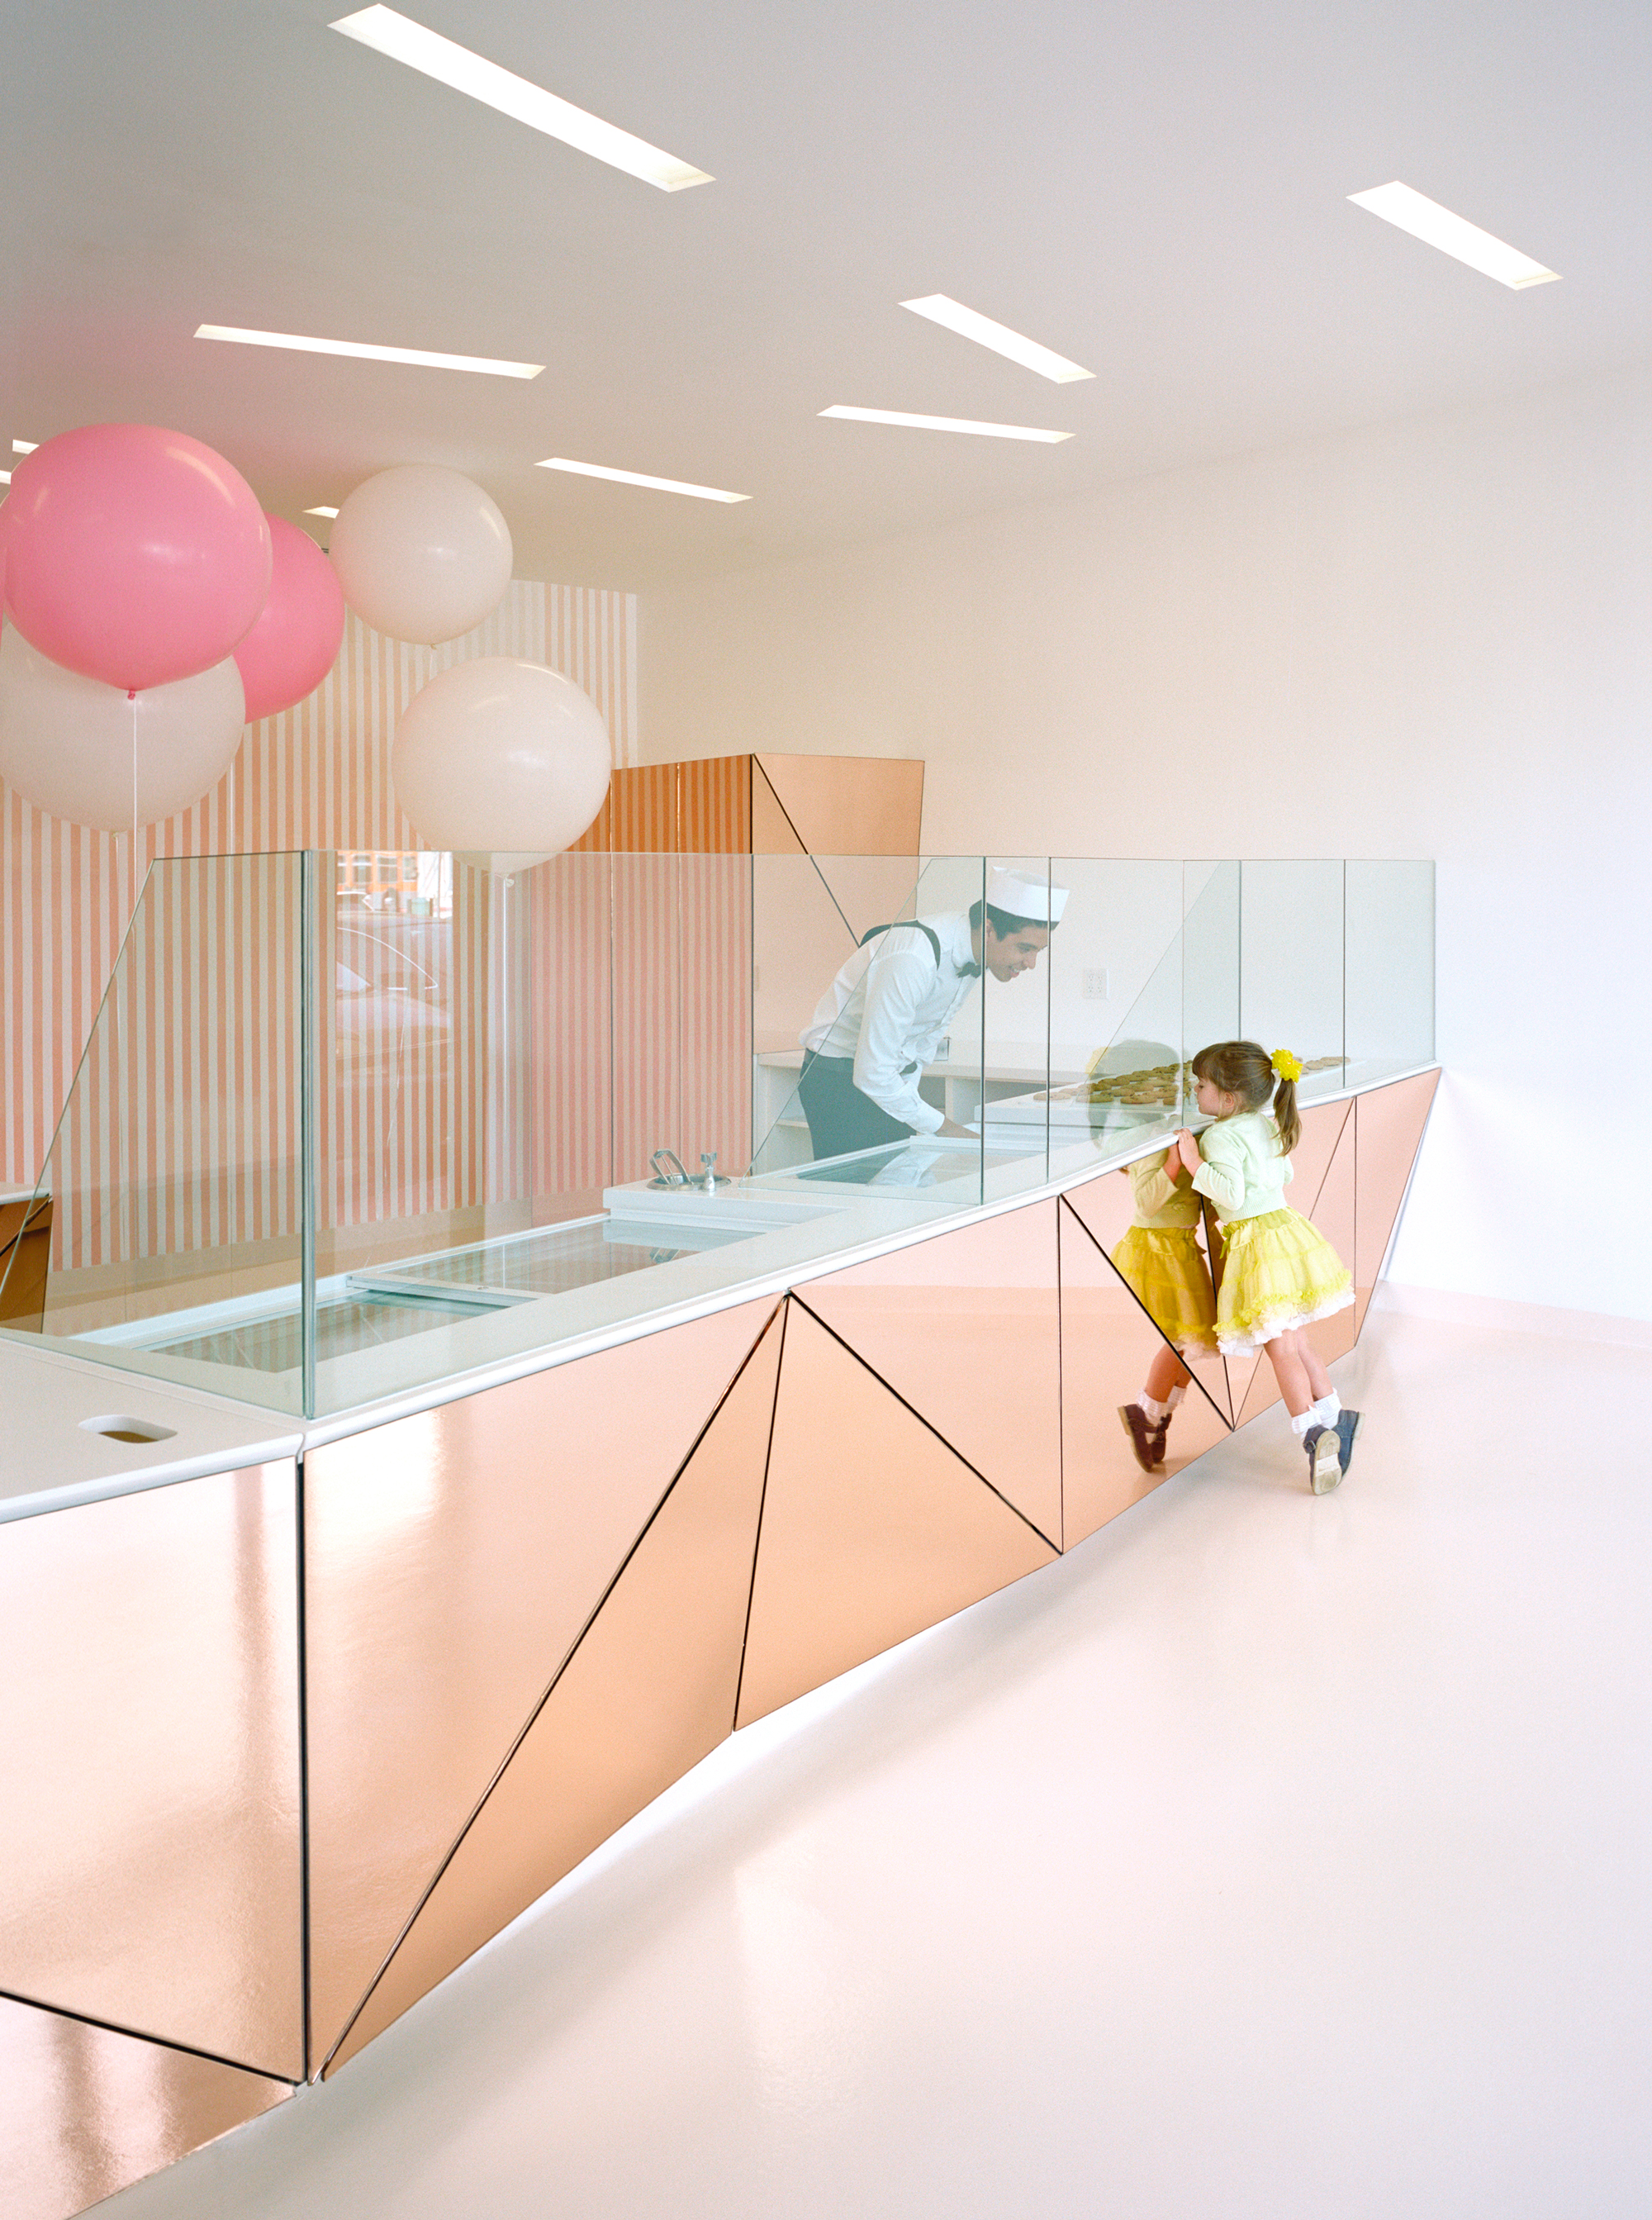 View of the mirror clad ice cream counter.